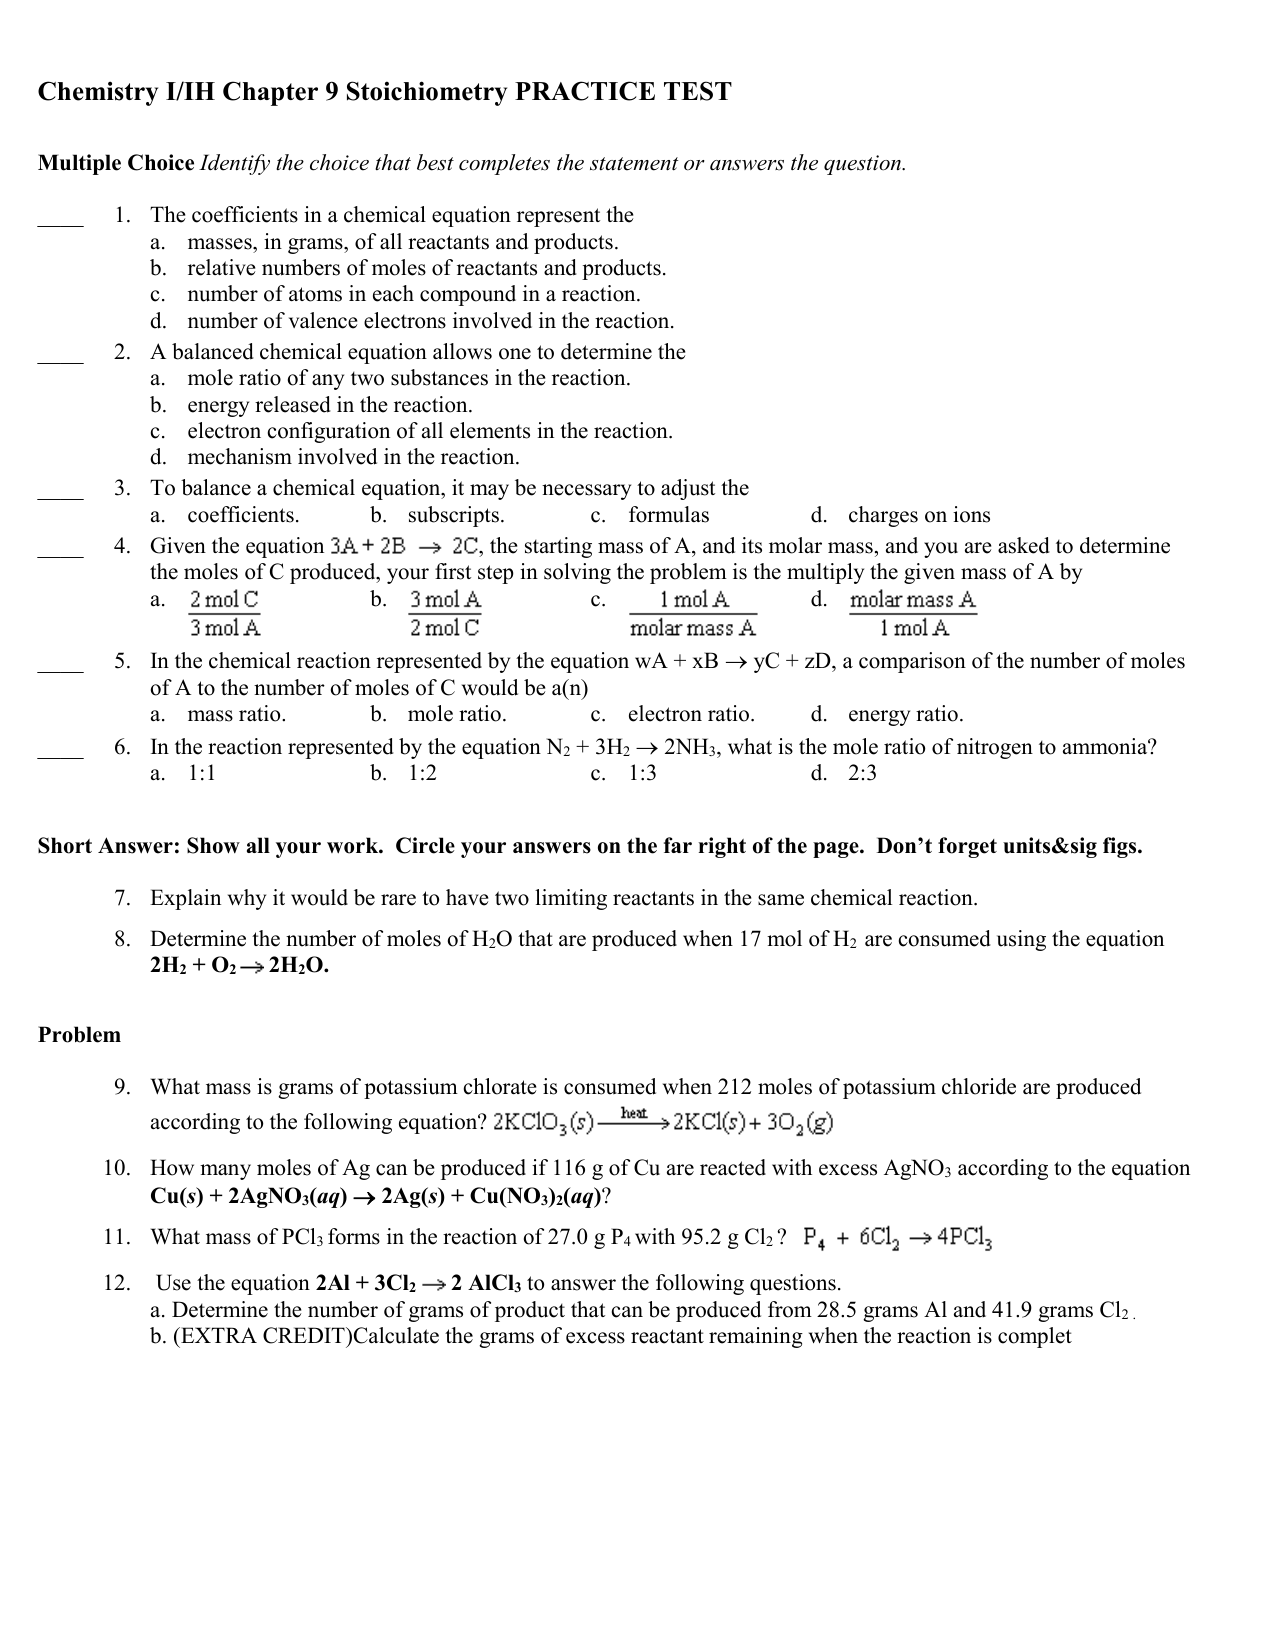 Quiz   Worksheet   Working With Mole To Mole Ratios   Study   FREE additionally Stoichiometry Practice Worksheets   Checks Worksheet also Gas Laws Practice Worksheet   Lostranquillos besides Stoichiometry Practice Worksheet Part 2   More Exciting additionally Alge Expressions Algeic Expression Worksheets For likewise worksheet  Stoichiometry Practice Worksheet Answer Key  Carlos Lomas moreover  together with Stoichiometry Practice Worksheet Answers Homedressage   sddf us likewise Worksheets Stoichiometry Worksheet  molemole  Answer Key G2KZ0  Mole likewise Subatomic Particles Worksheet Answer Key with Stoichiometry Practice together with stoichiometry practice worksheet answers   3axid additionally DJHS Chem Unit 8 additionally Molar M Practice Worksheet Answer Key Beautiful Stoichiometry likewise  as well Chemistry I IH Chapter 9 Stoichiometry PRACTICE TEST Multiple furthermore Printables  Stoichiometry Worksheet Answers  Lemonlilyfestival. on stoichiometry practice worksheet answer key